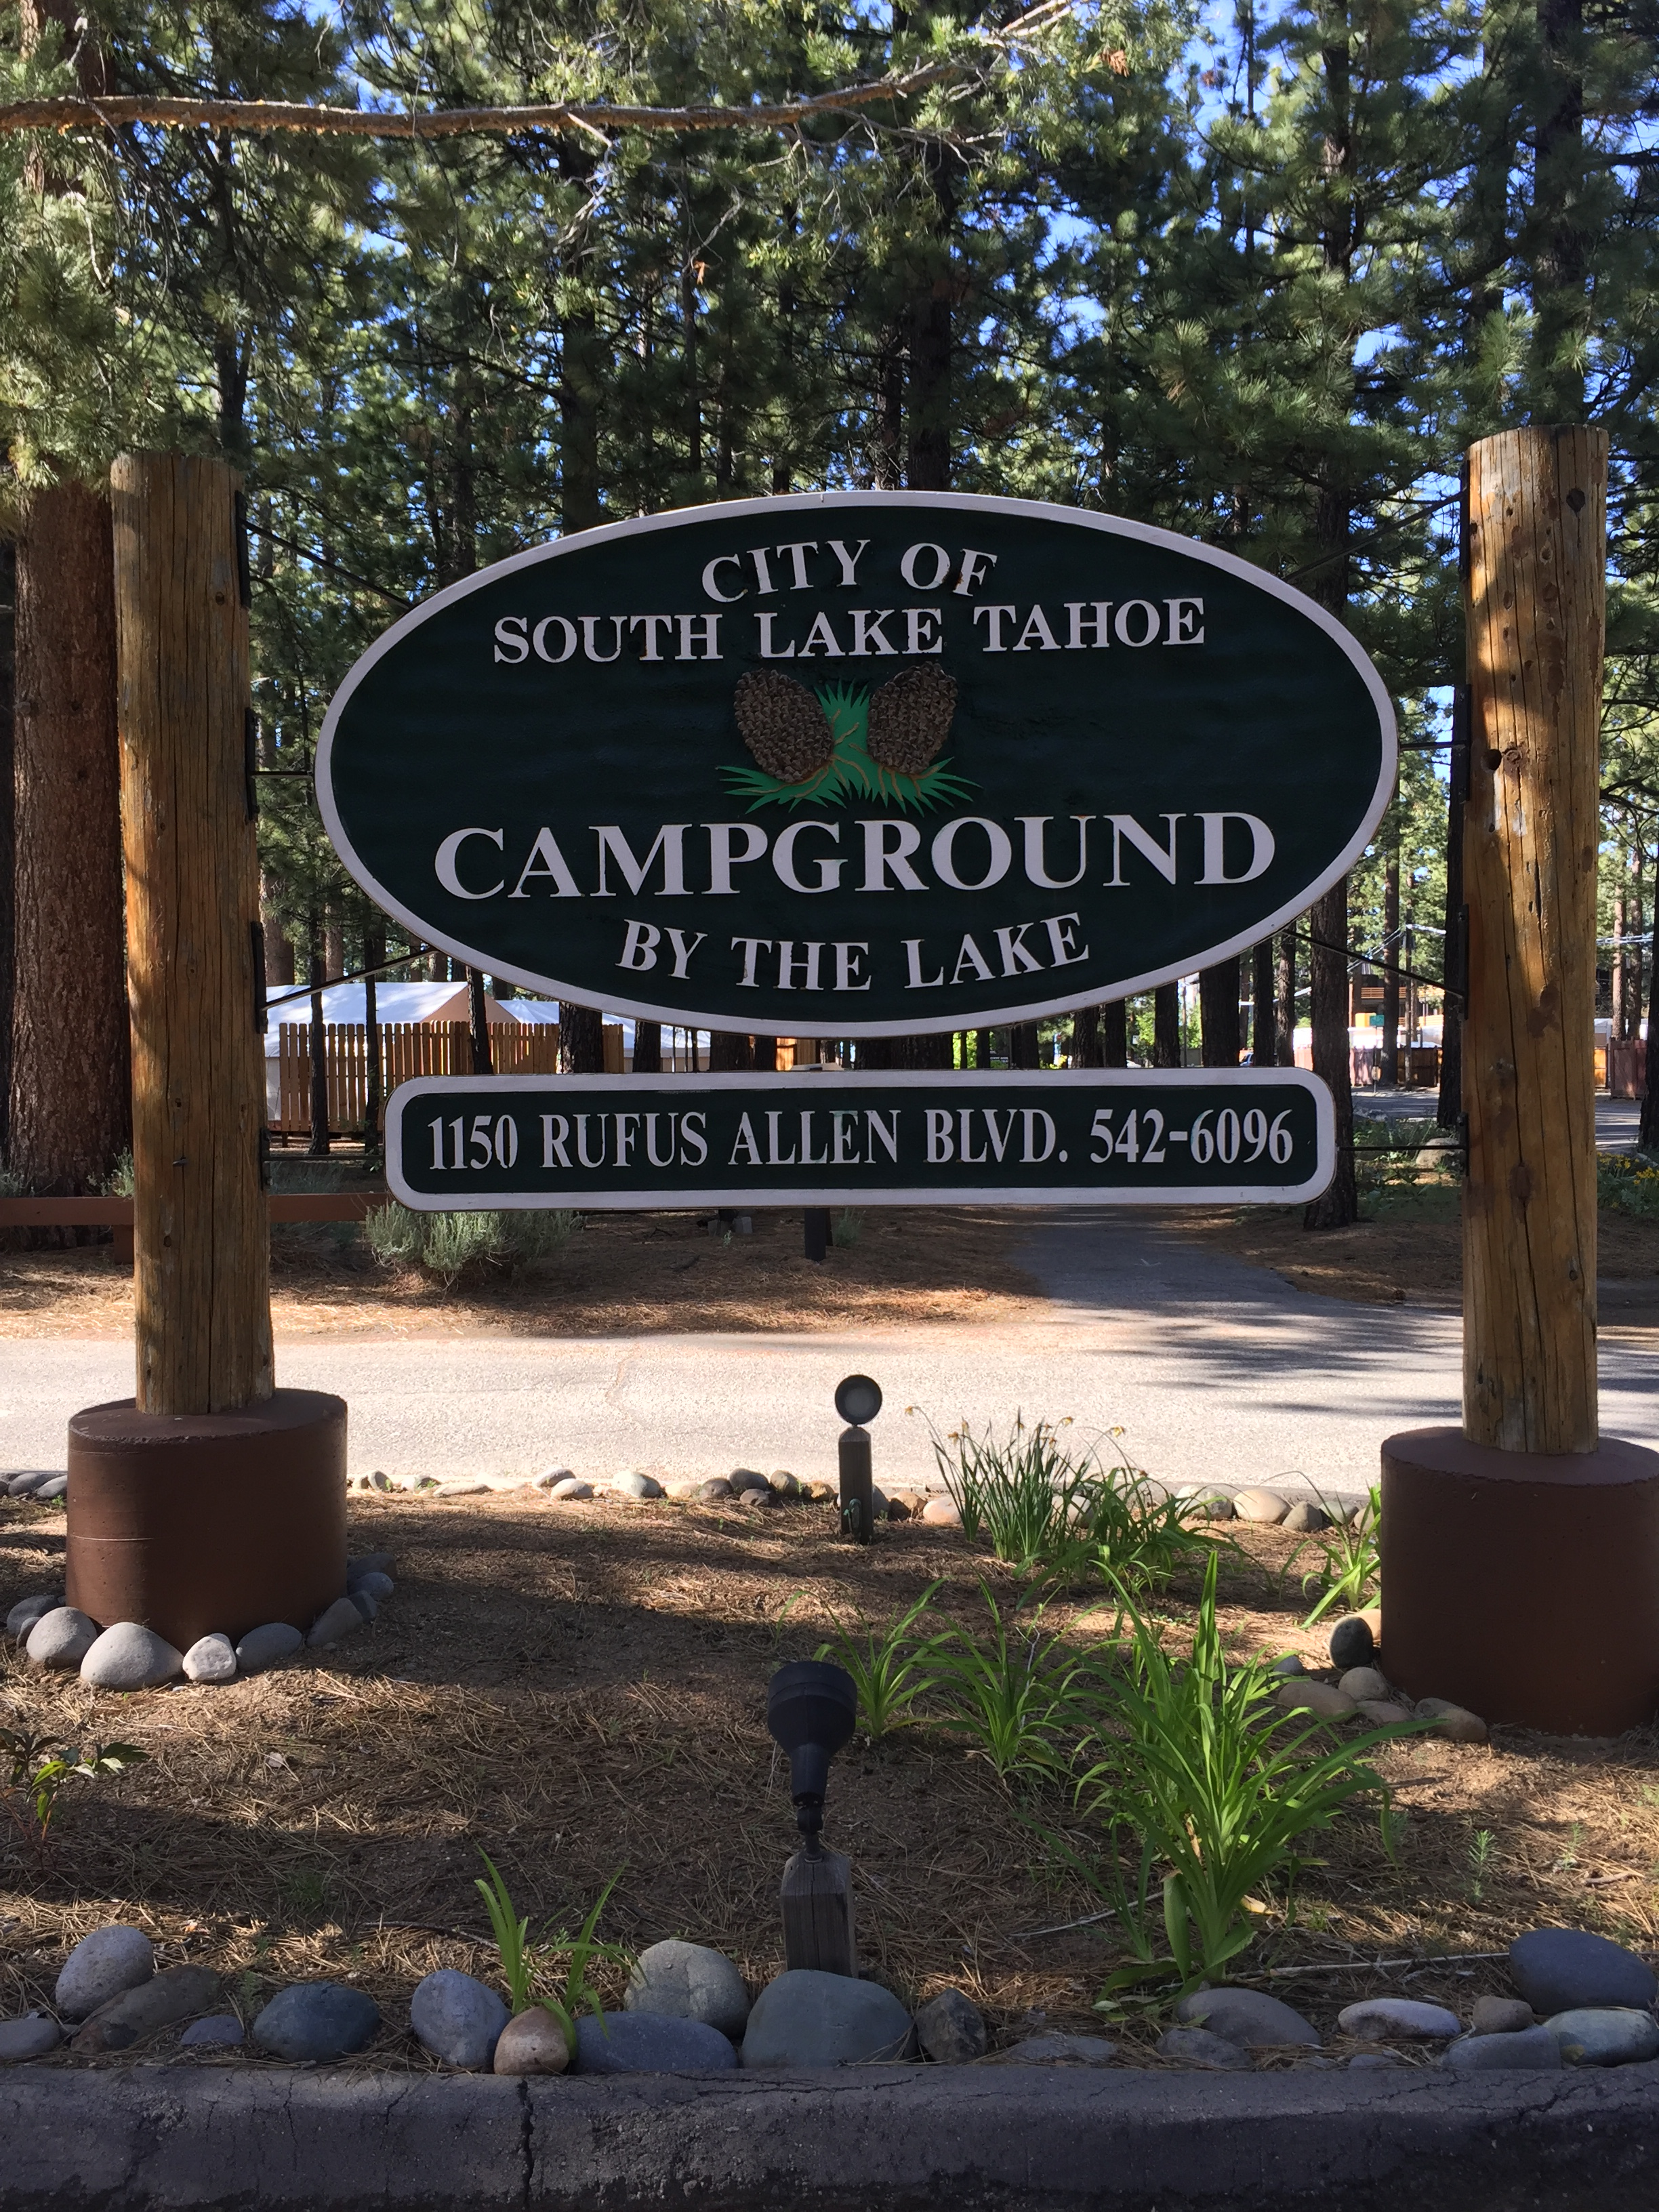 Campground by the Lake | South Lake Tahoe, CA - Official Website on united states rv map, united states playground map, united states wildlife map, united states antiques map, united states golf map, united states forest map, united states farm map, united states motel map, united states ski area map, united states weather map, united states park map, united states travel map, united states rental map, united states university map, united states river map, united states trail map, united states fishing map, united states city map, united states road map, united states school map,